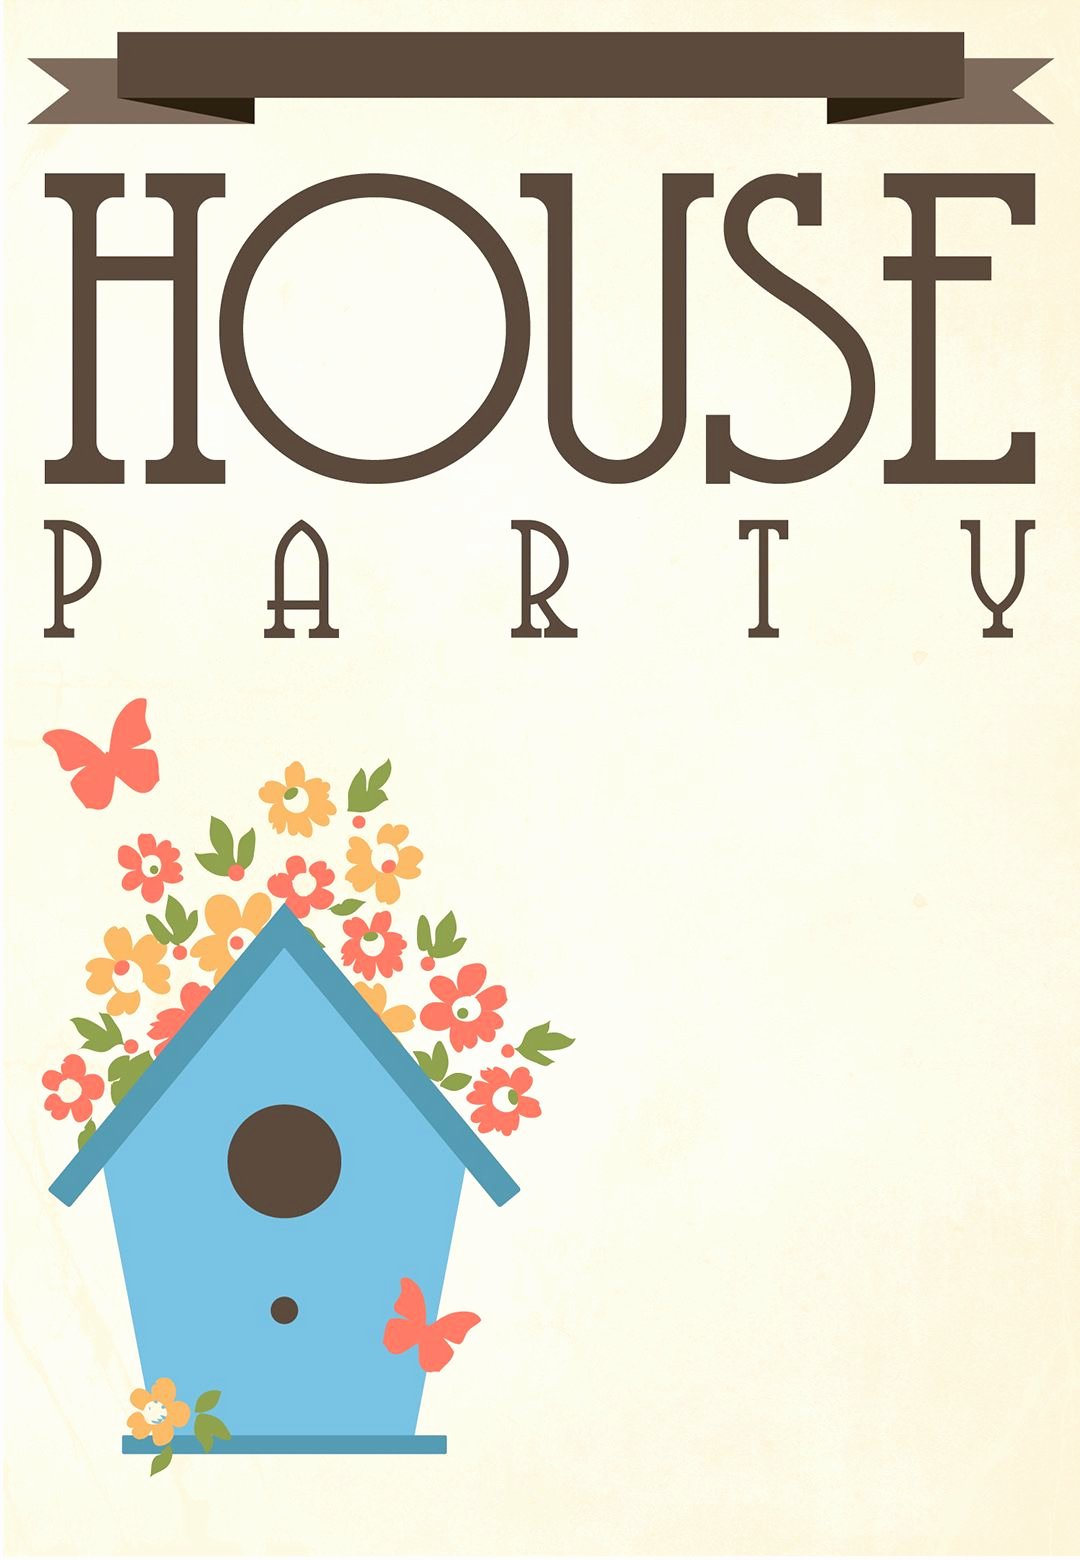 Housewarming Party Invitations Template Lovely Free Printable House Party Invitation